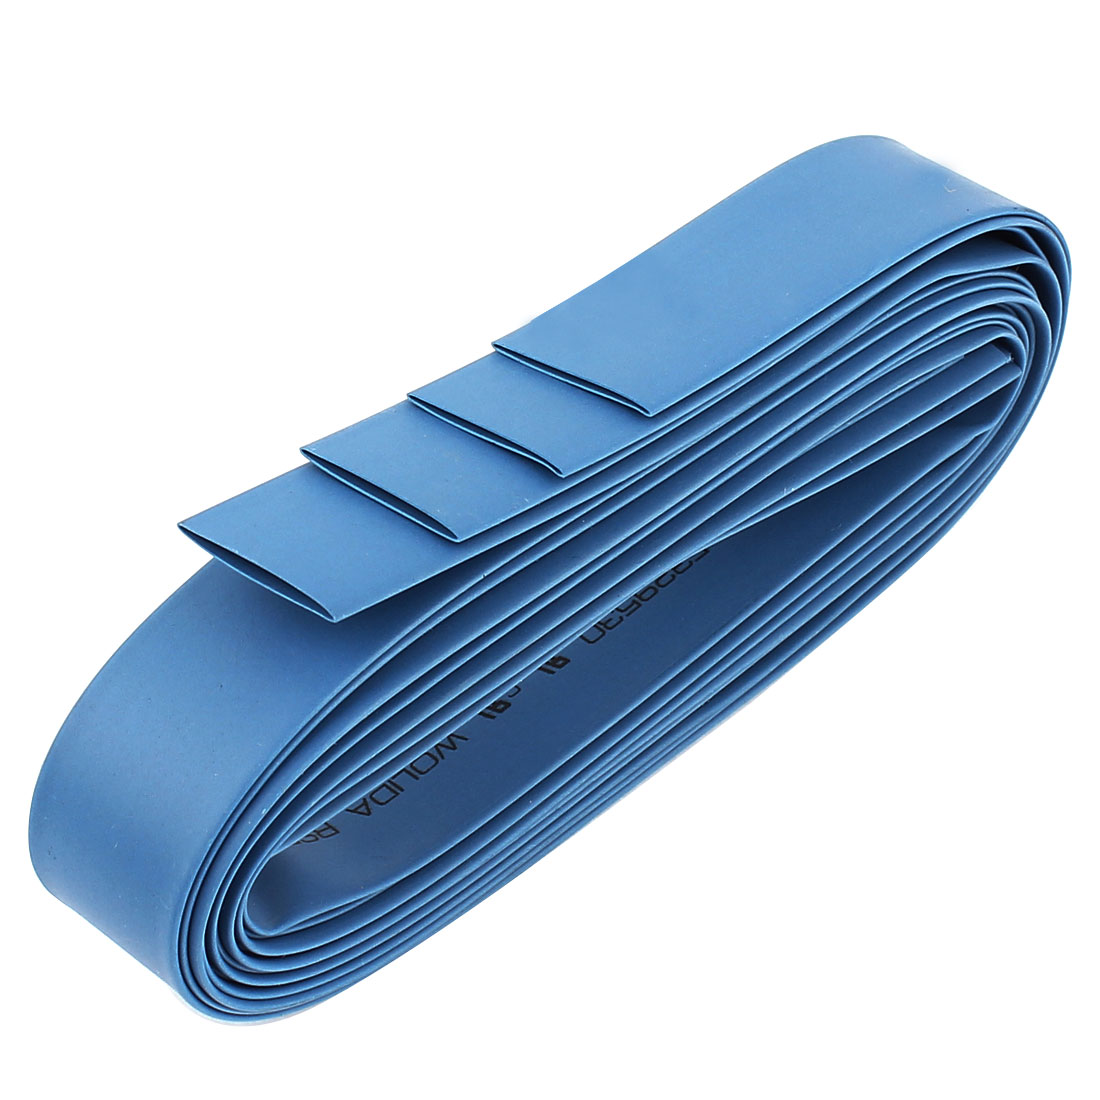 14mm Dia 1M 3.3Ft Long 2:1 Heat Shrink Tubing Wire Wrap Sleeve 4pcs Blue